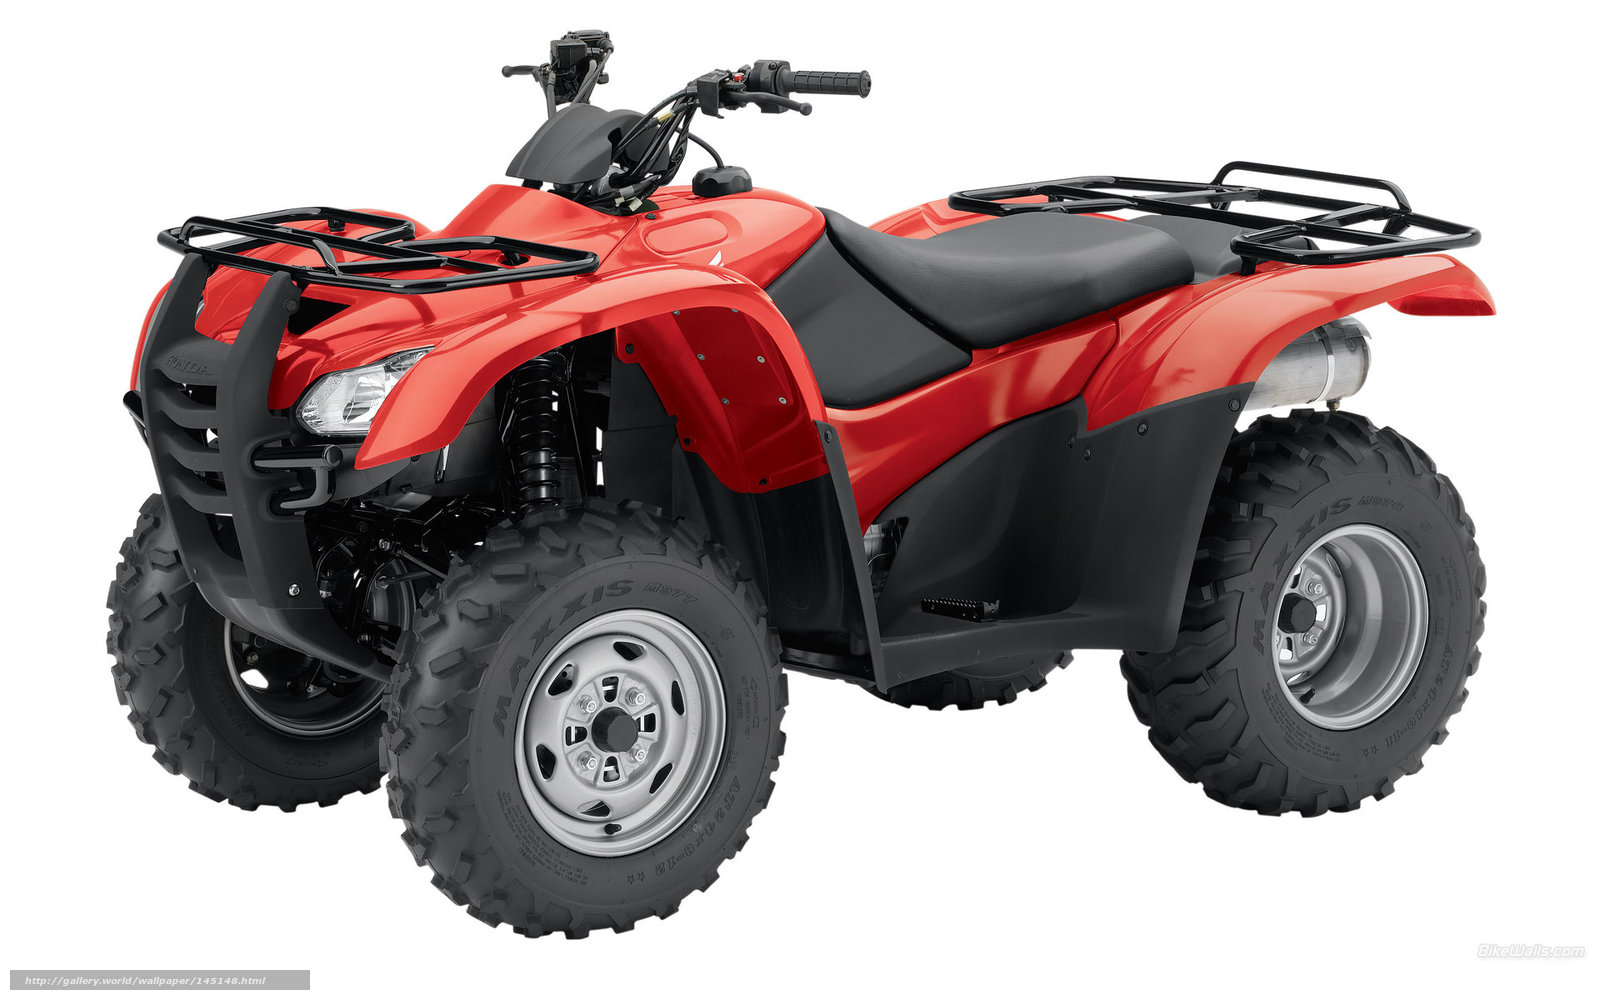 ... Array - honda trx90 manual fourtrax 90 service shop 9518924 techpneu  info rh techpneu info